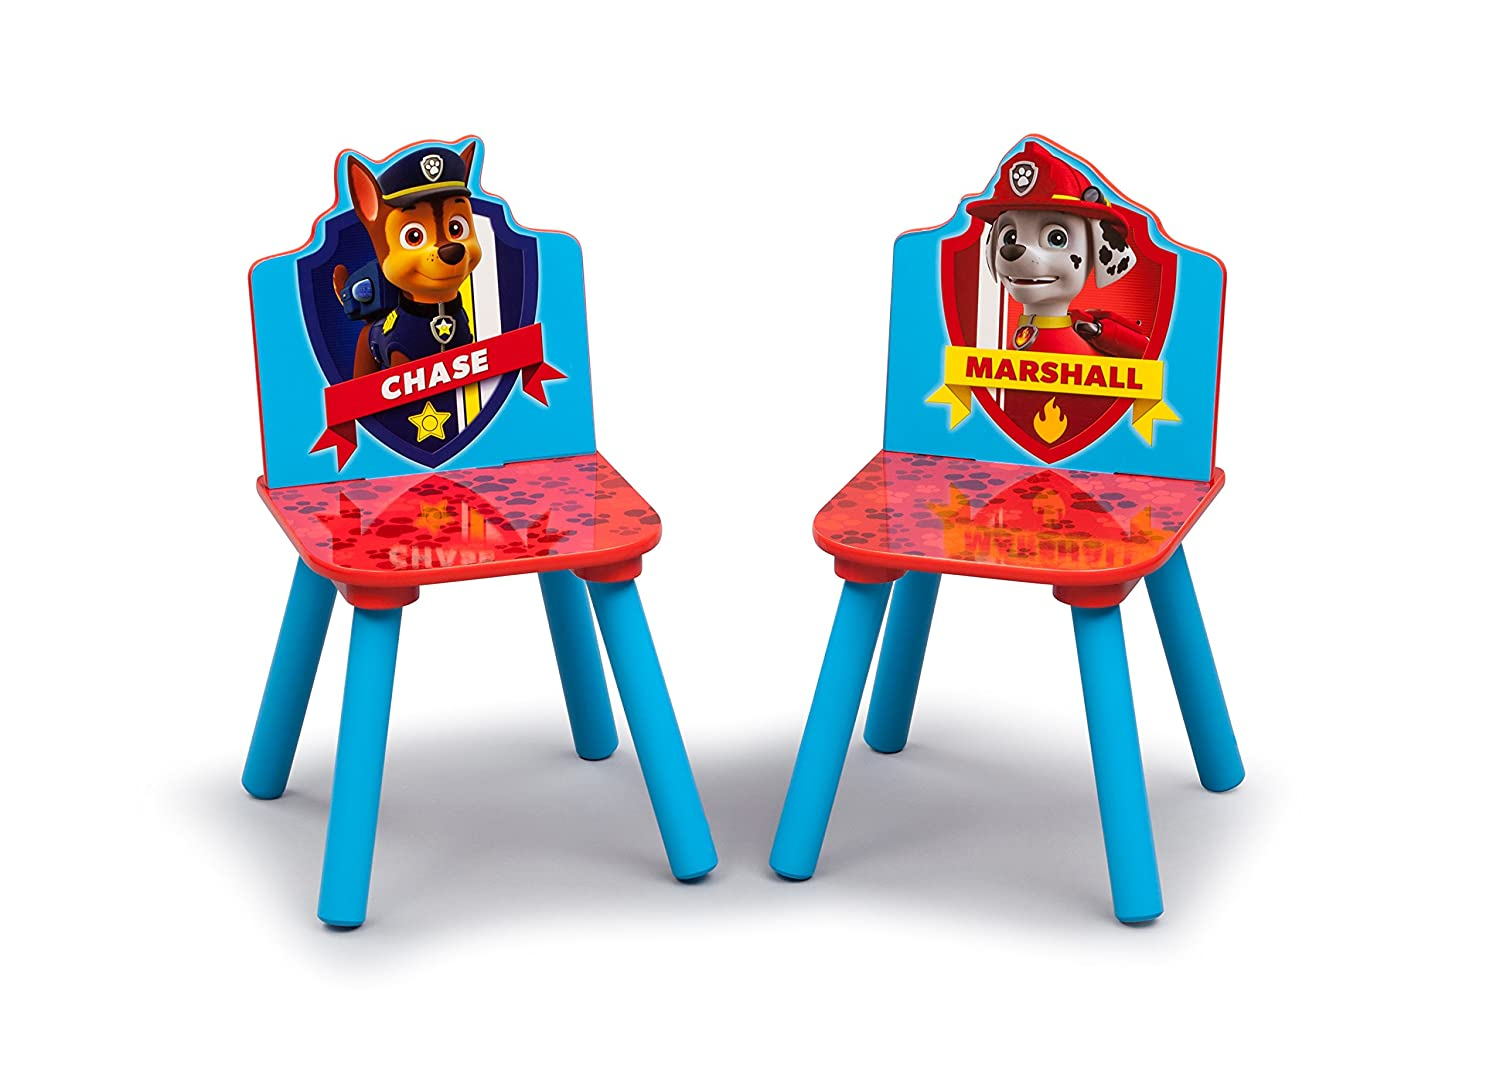 Amazon.com Delta Children Table and Chair Set with Storage Nick Jr. PAW Patrol Baby  sc 1 st  Amazon.com & Amazon.com: Delta Children Table and Chair Set with Storage Nick Jr ...